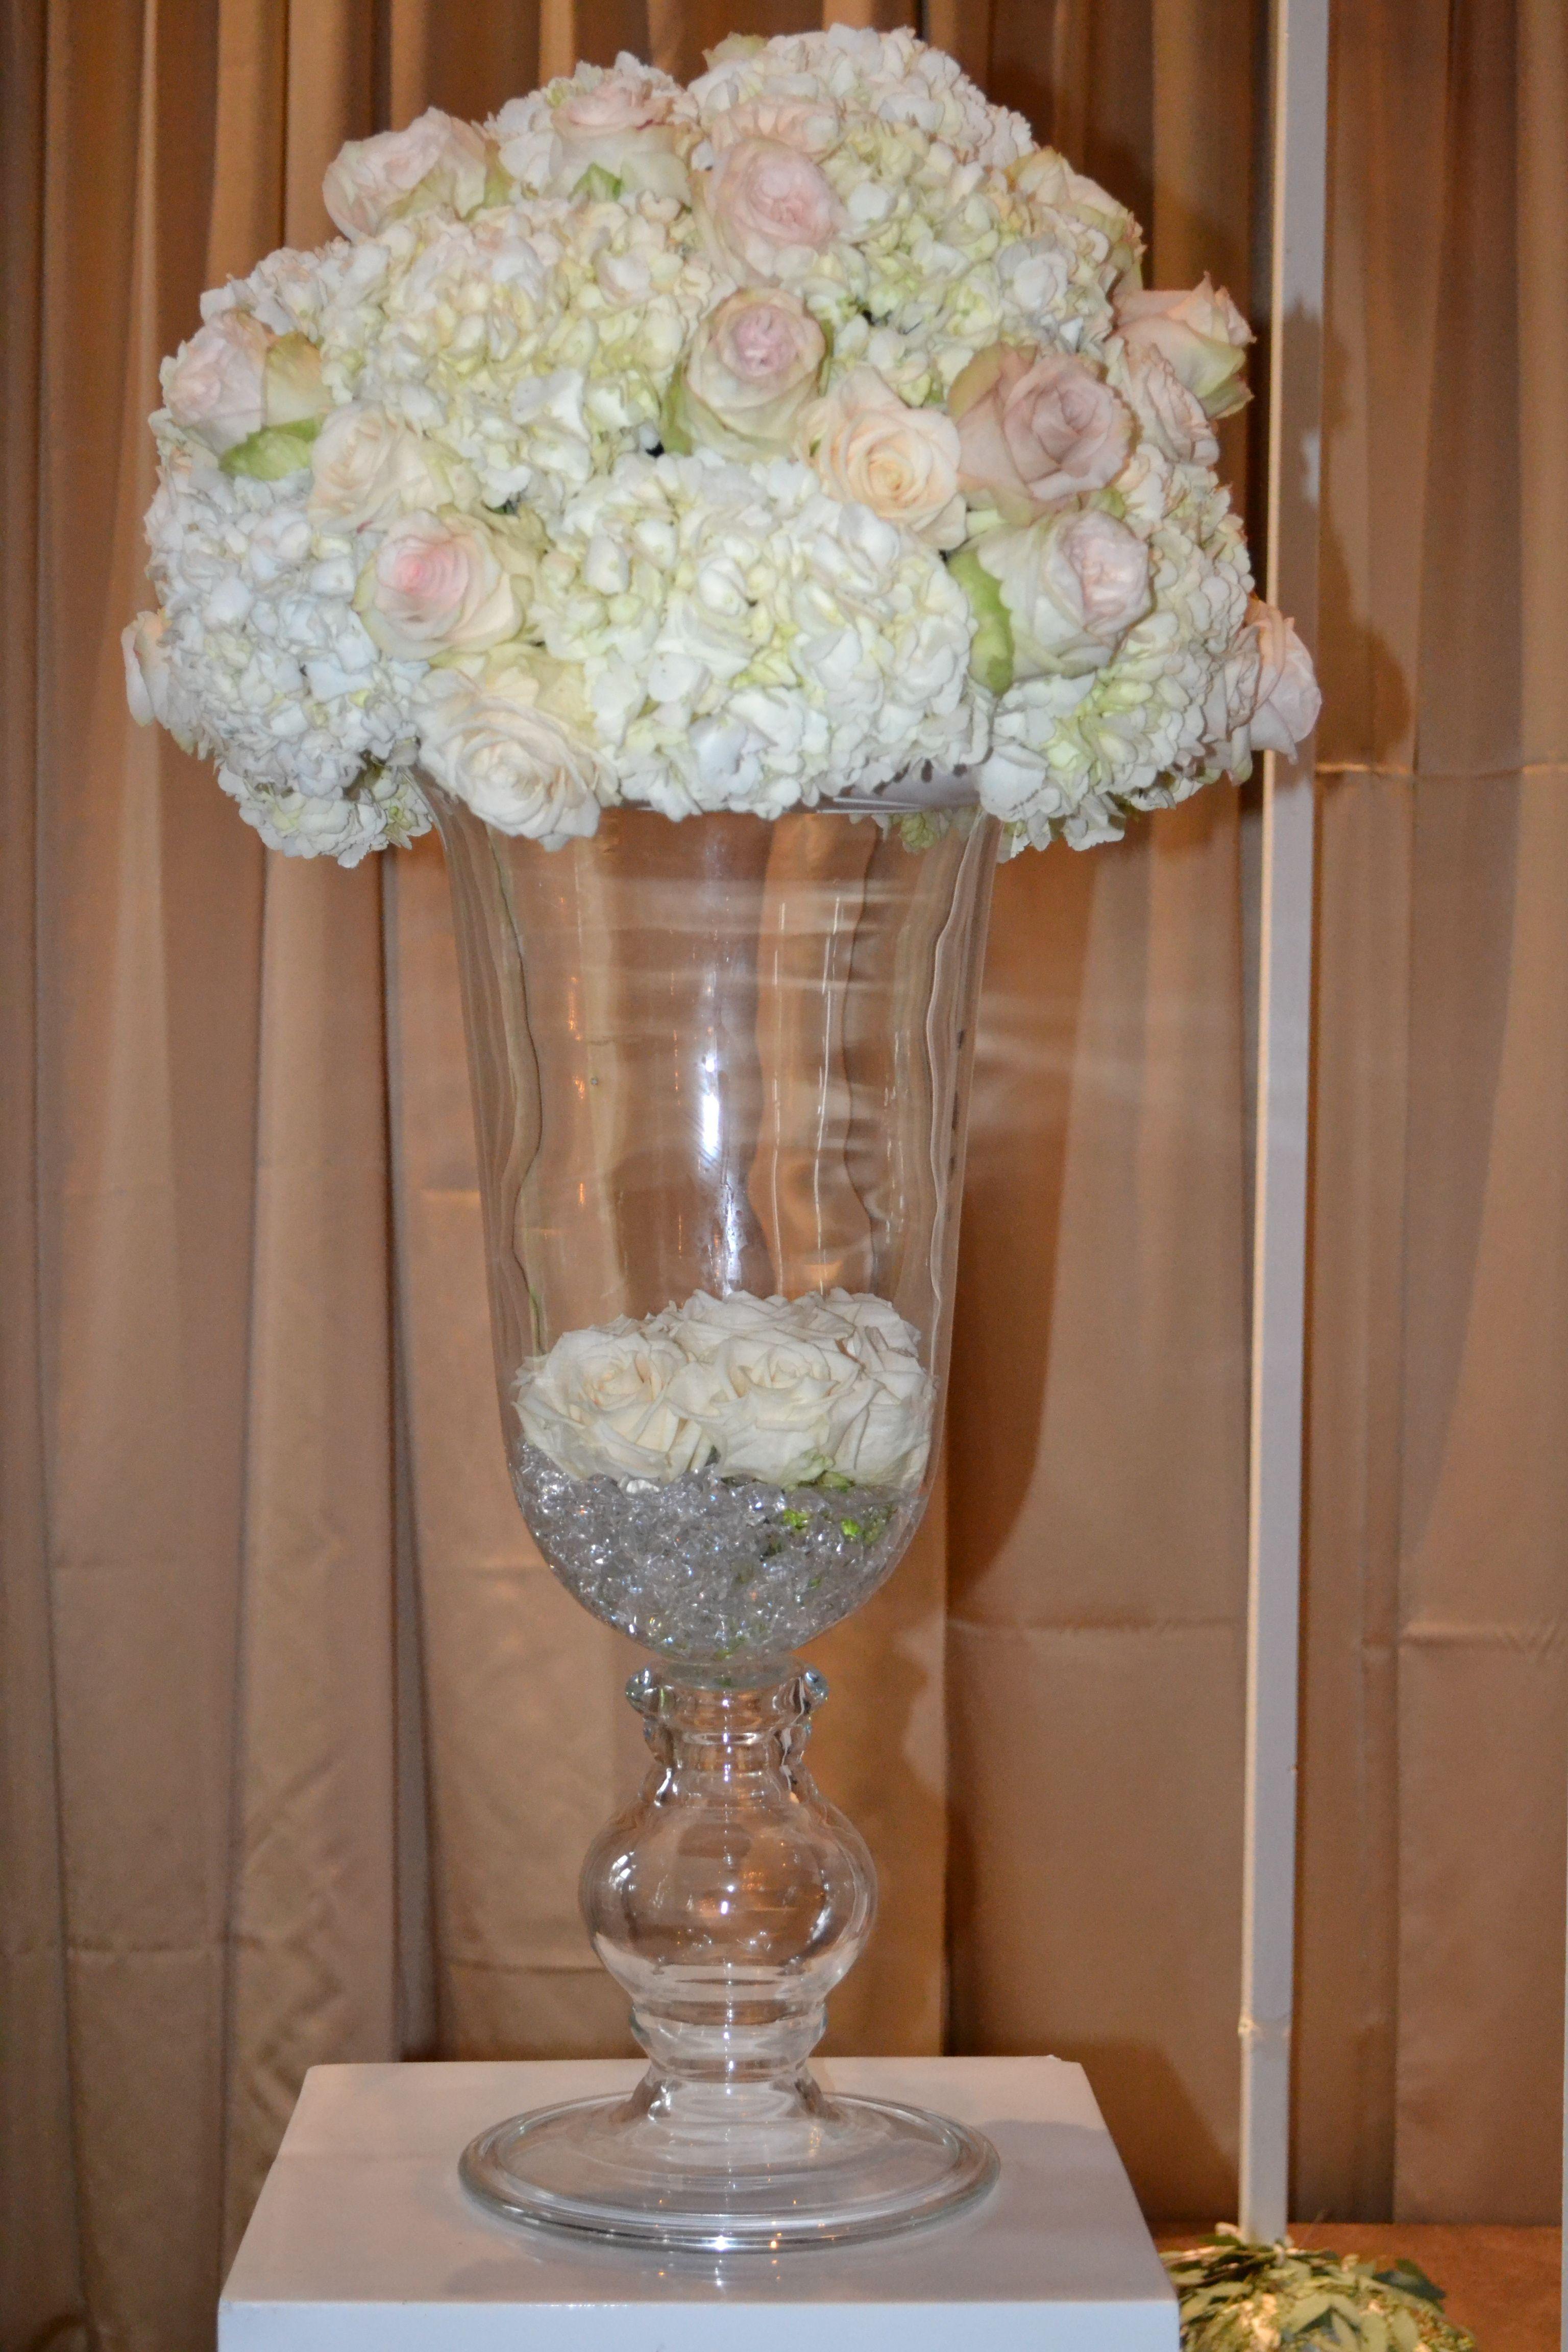 Wedding planning decor and flowers by lepapillonevents pink wedding planning decor and flowers by lepapillonevents pink blush izmirmasajfo